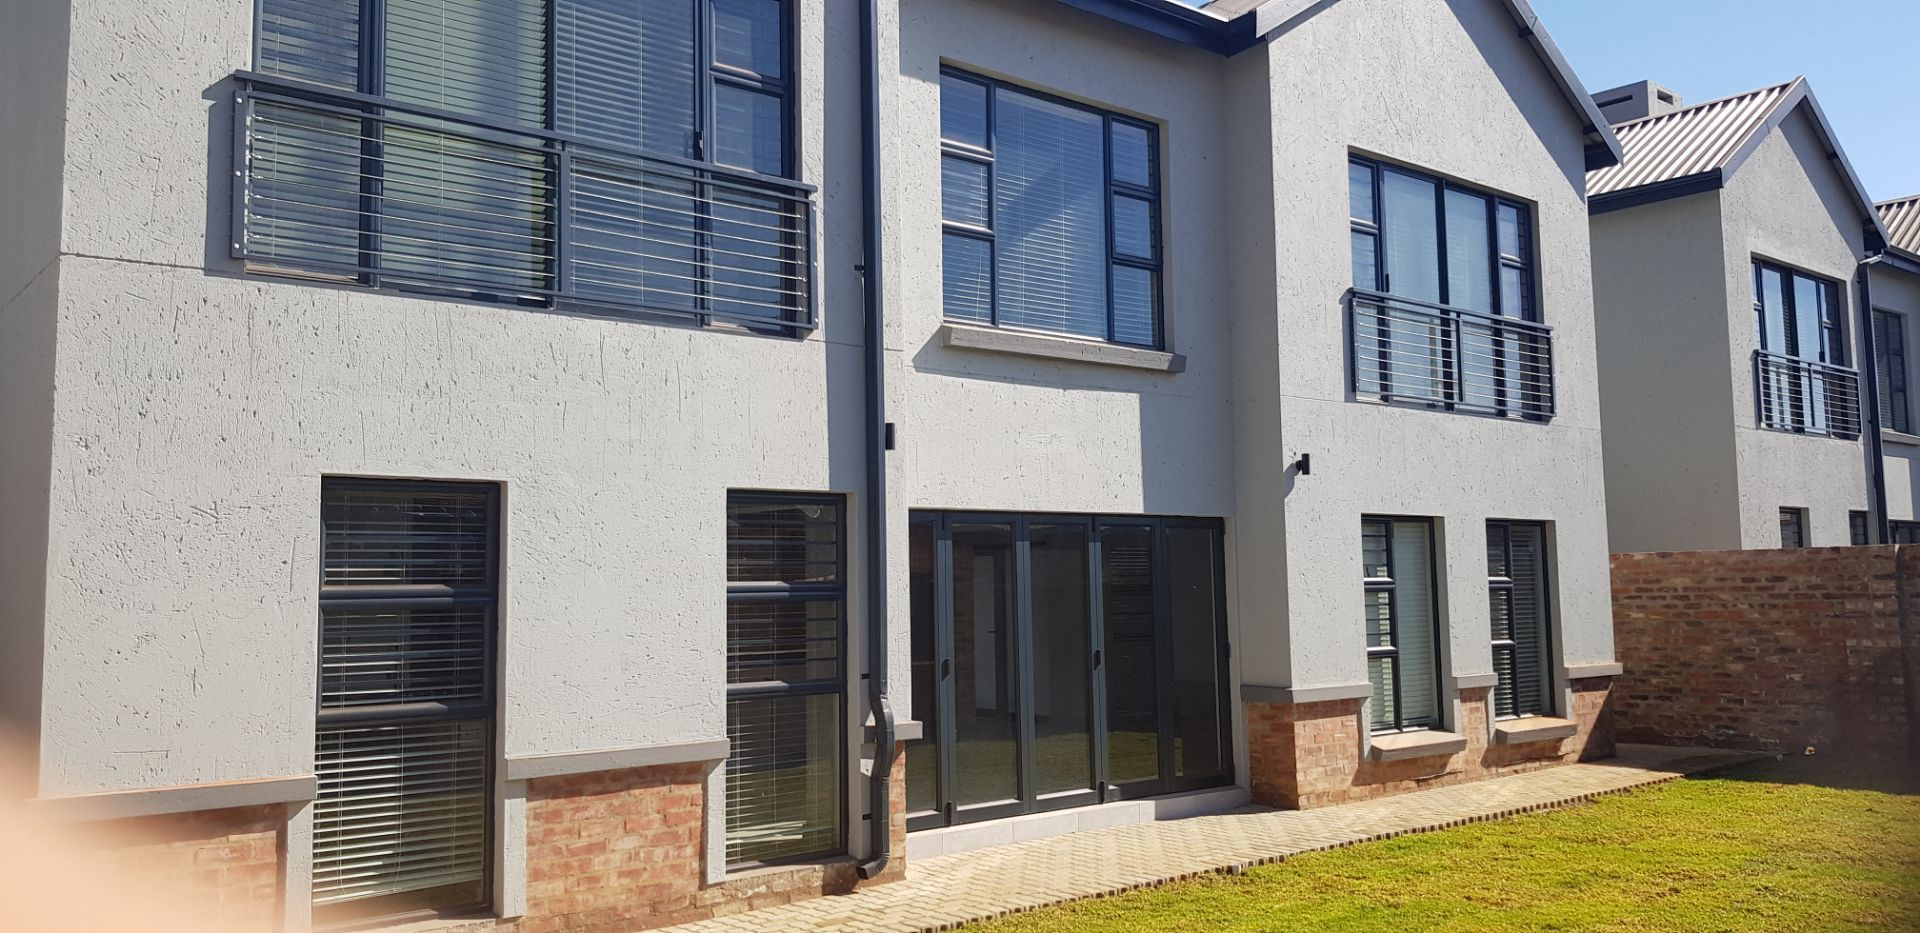 House in Lifestyle Estate - 20190712_112001.jpg